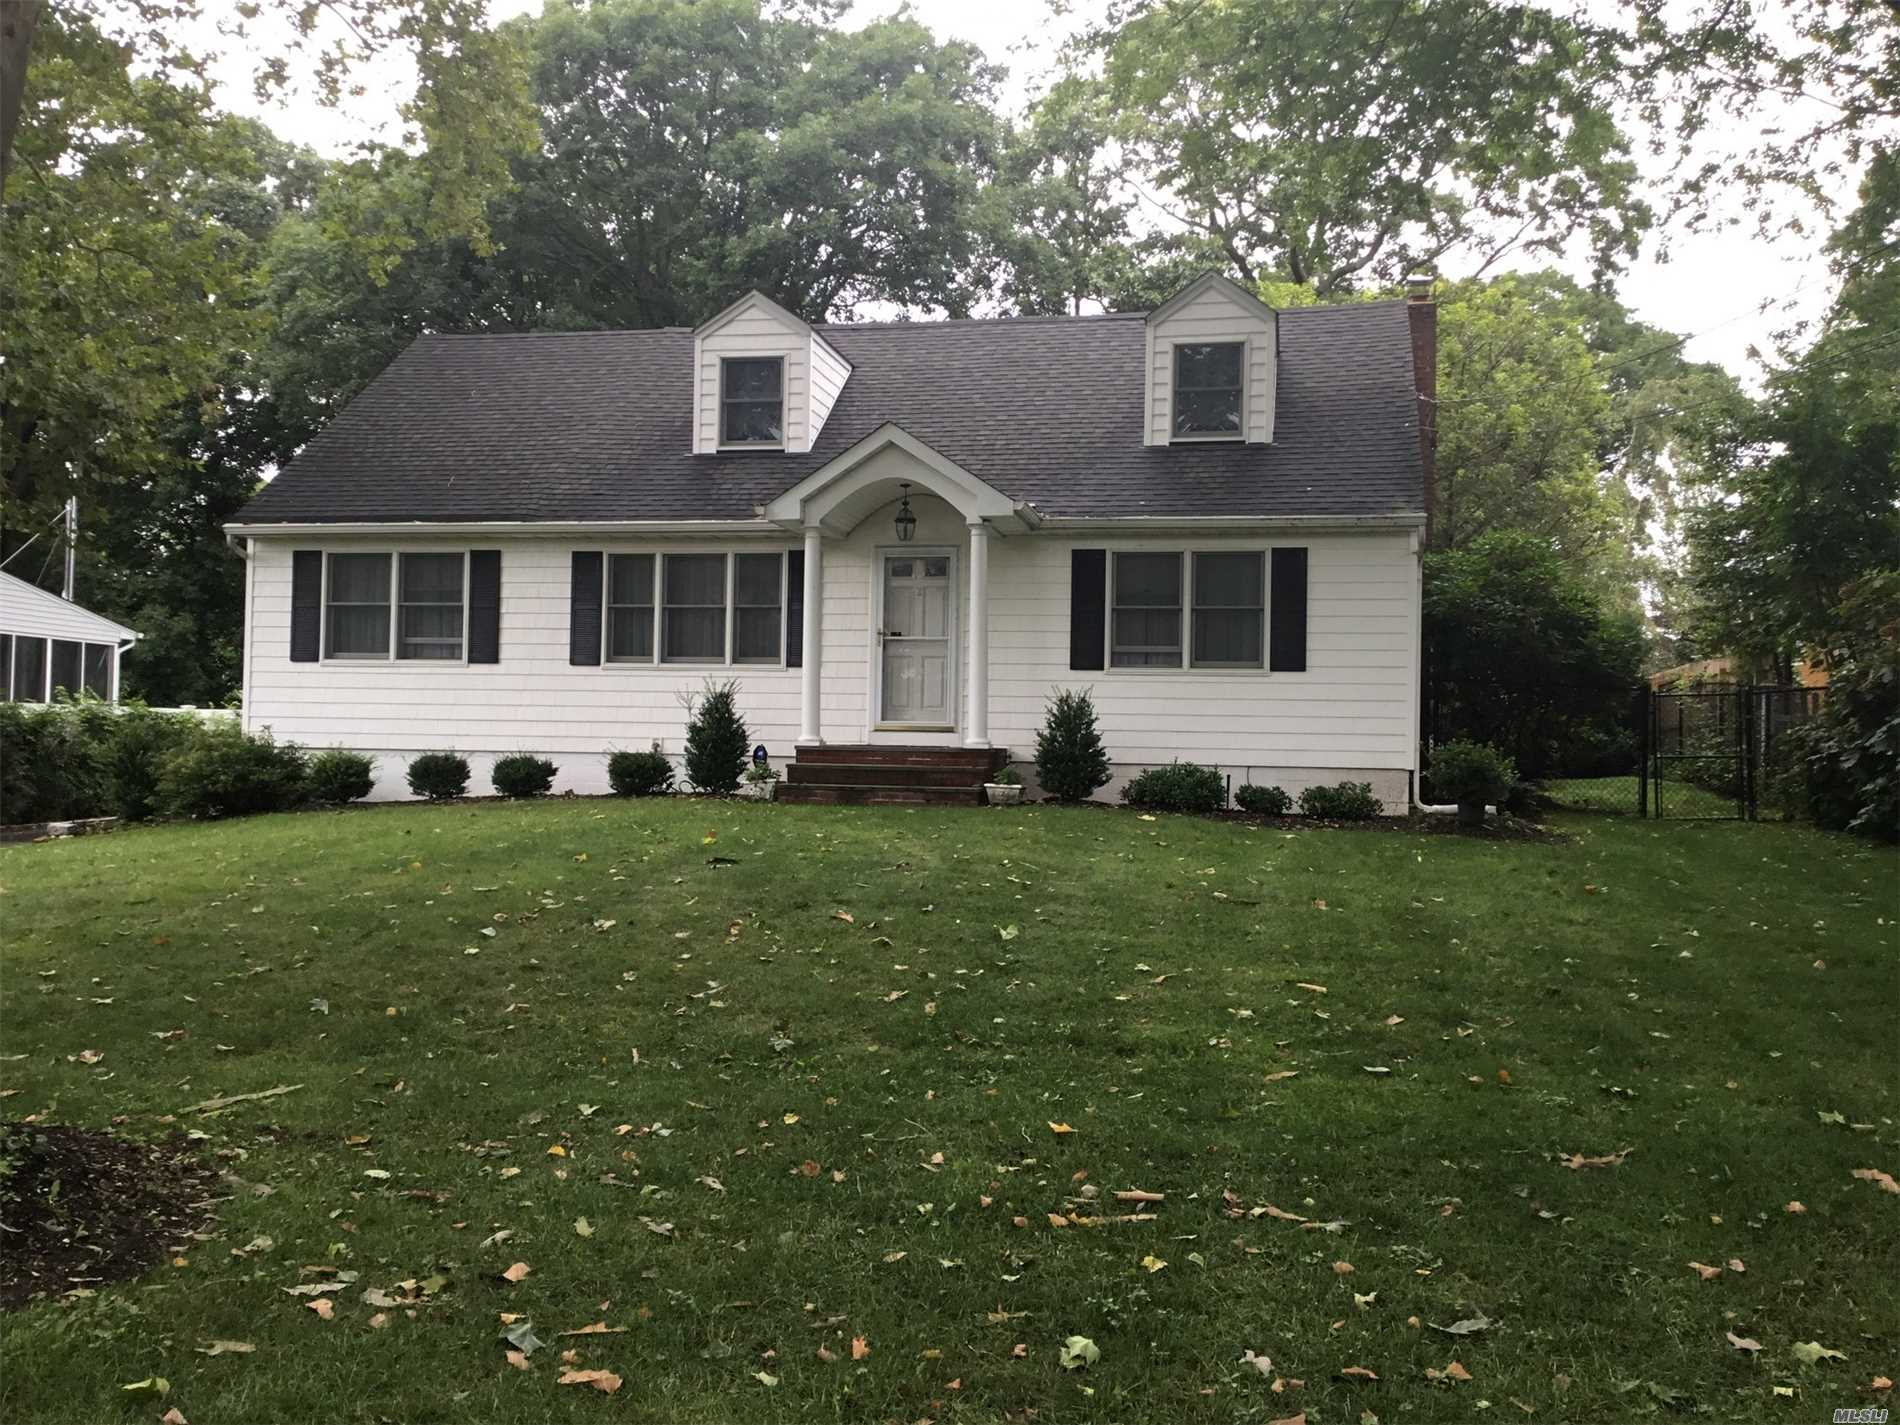 Spacious, Expanded, Dormered Cape, Totally Updated, Located In Desirable Deeded Private Beach Community. Featuring Hardwood Floors, Granite Countertops, Updated Bathrooms, 4 Large Bedrooms.